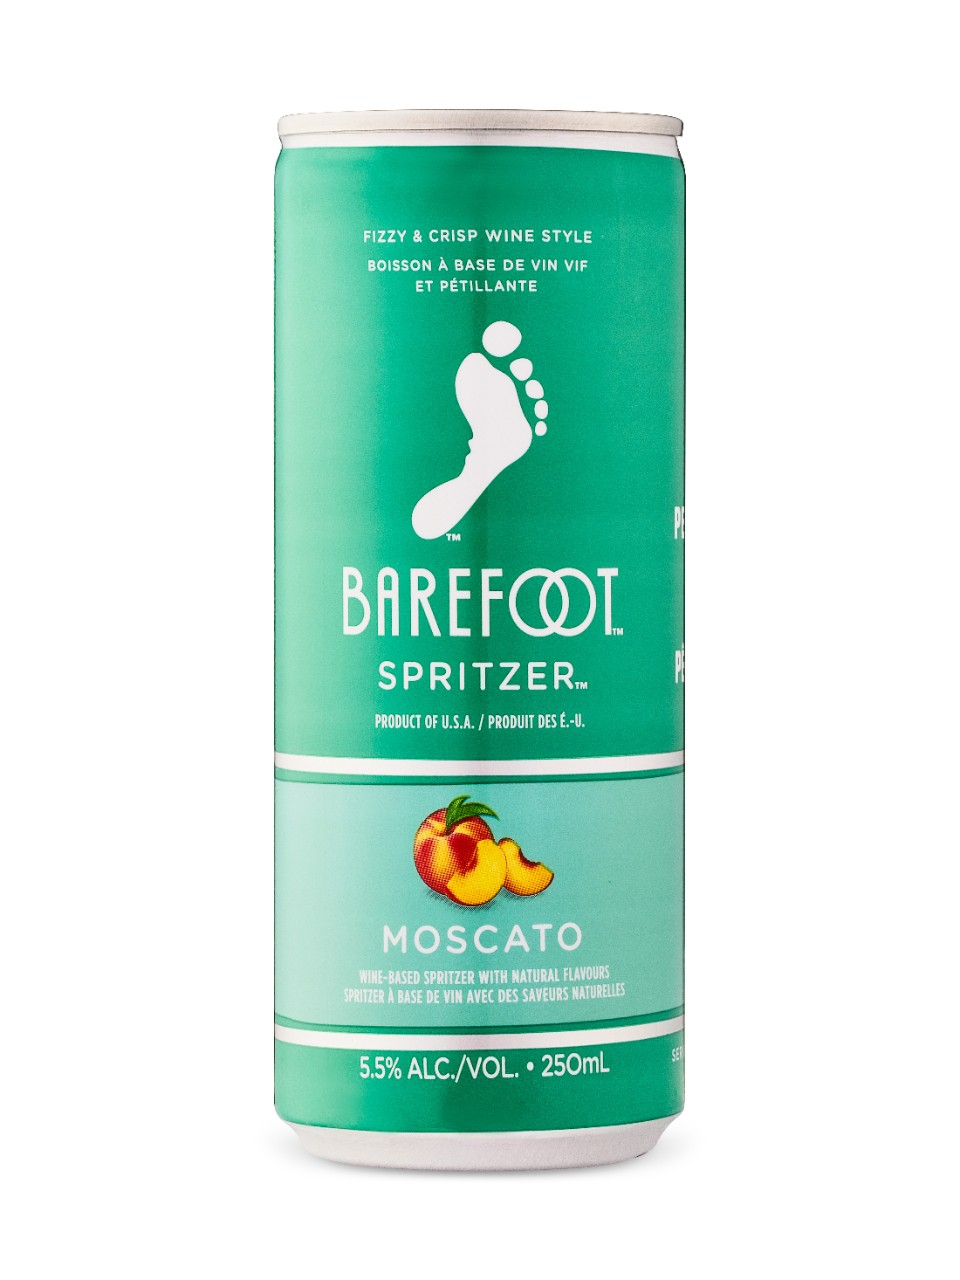 Barefoot Moscato Spritzer from LCBO